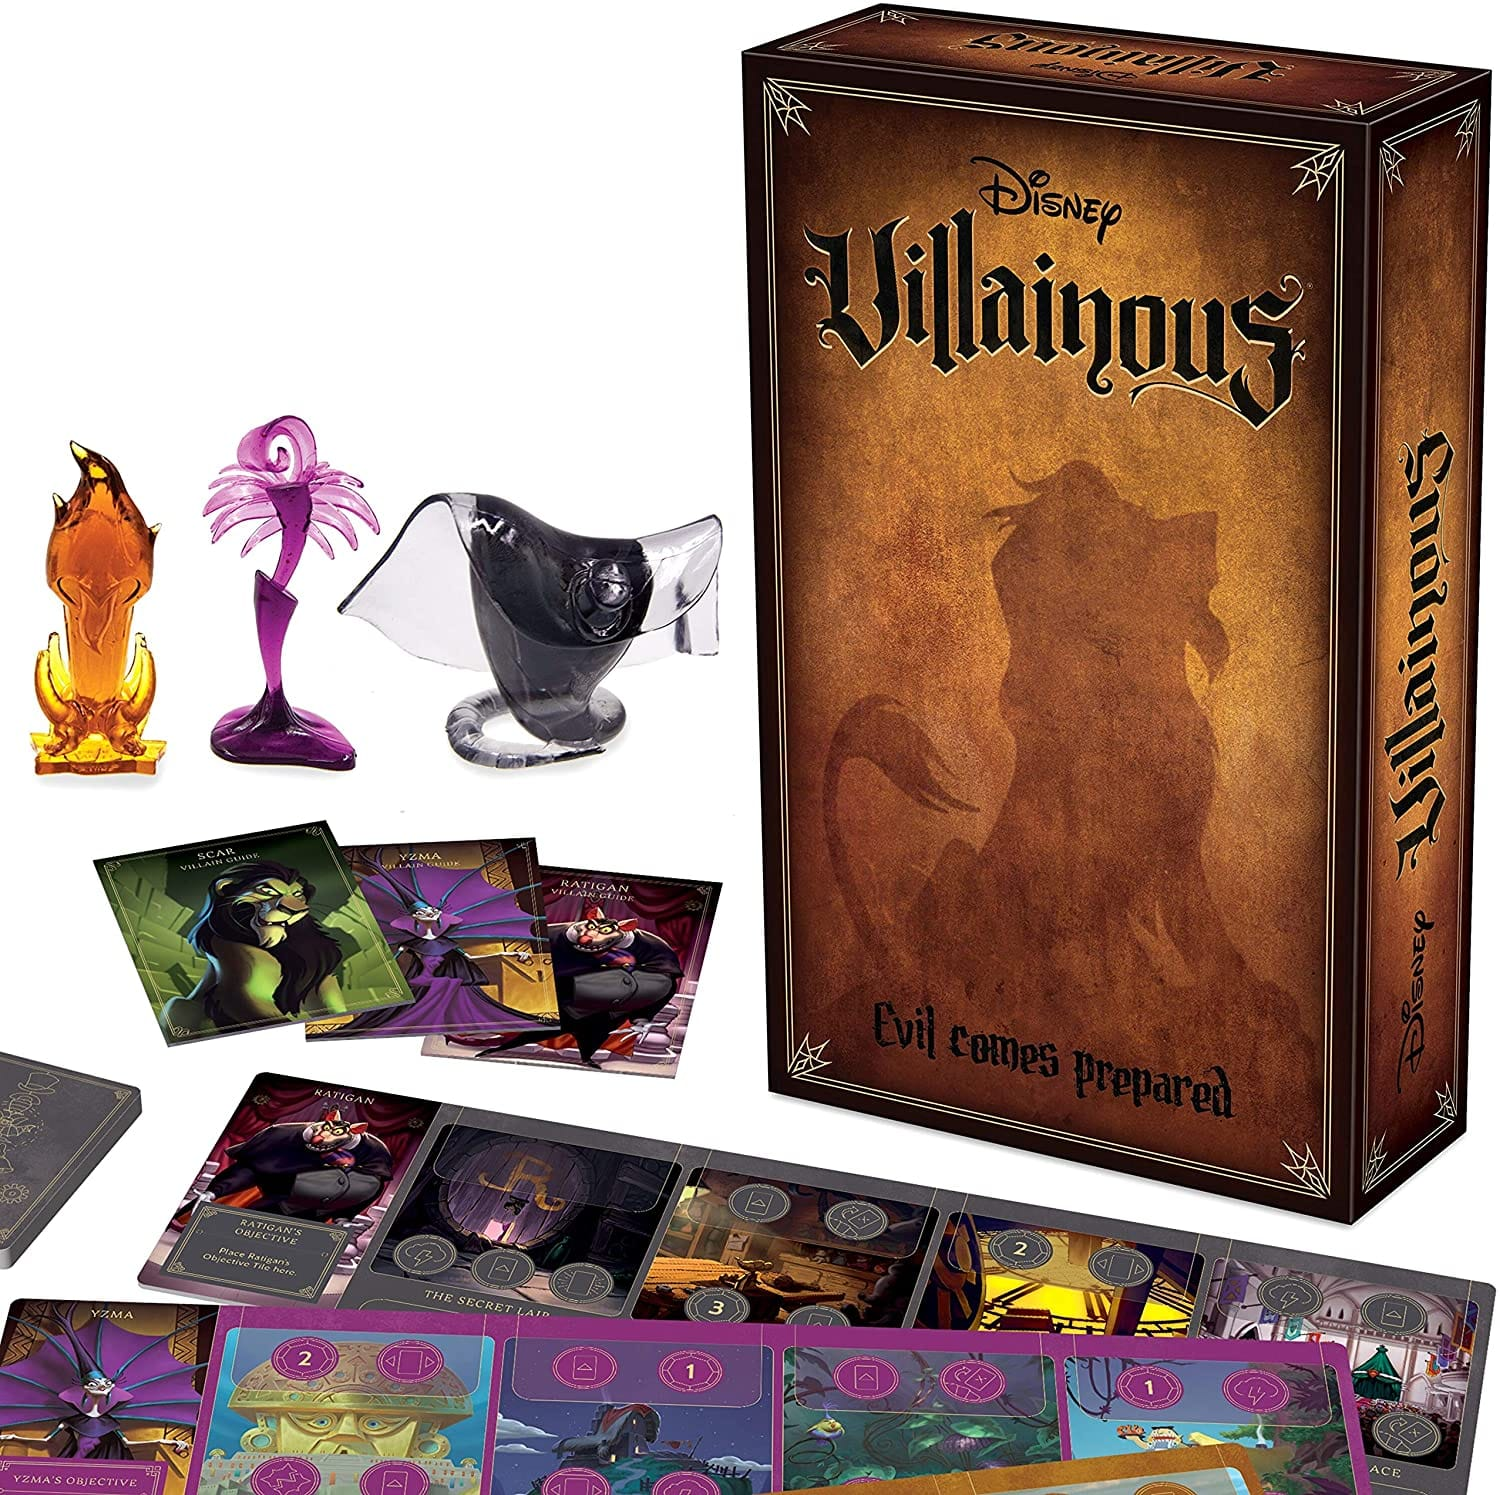 Ravensburger Disney Villainous: Evil Comes Prepared Stand-Alone and Expansion Board Game